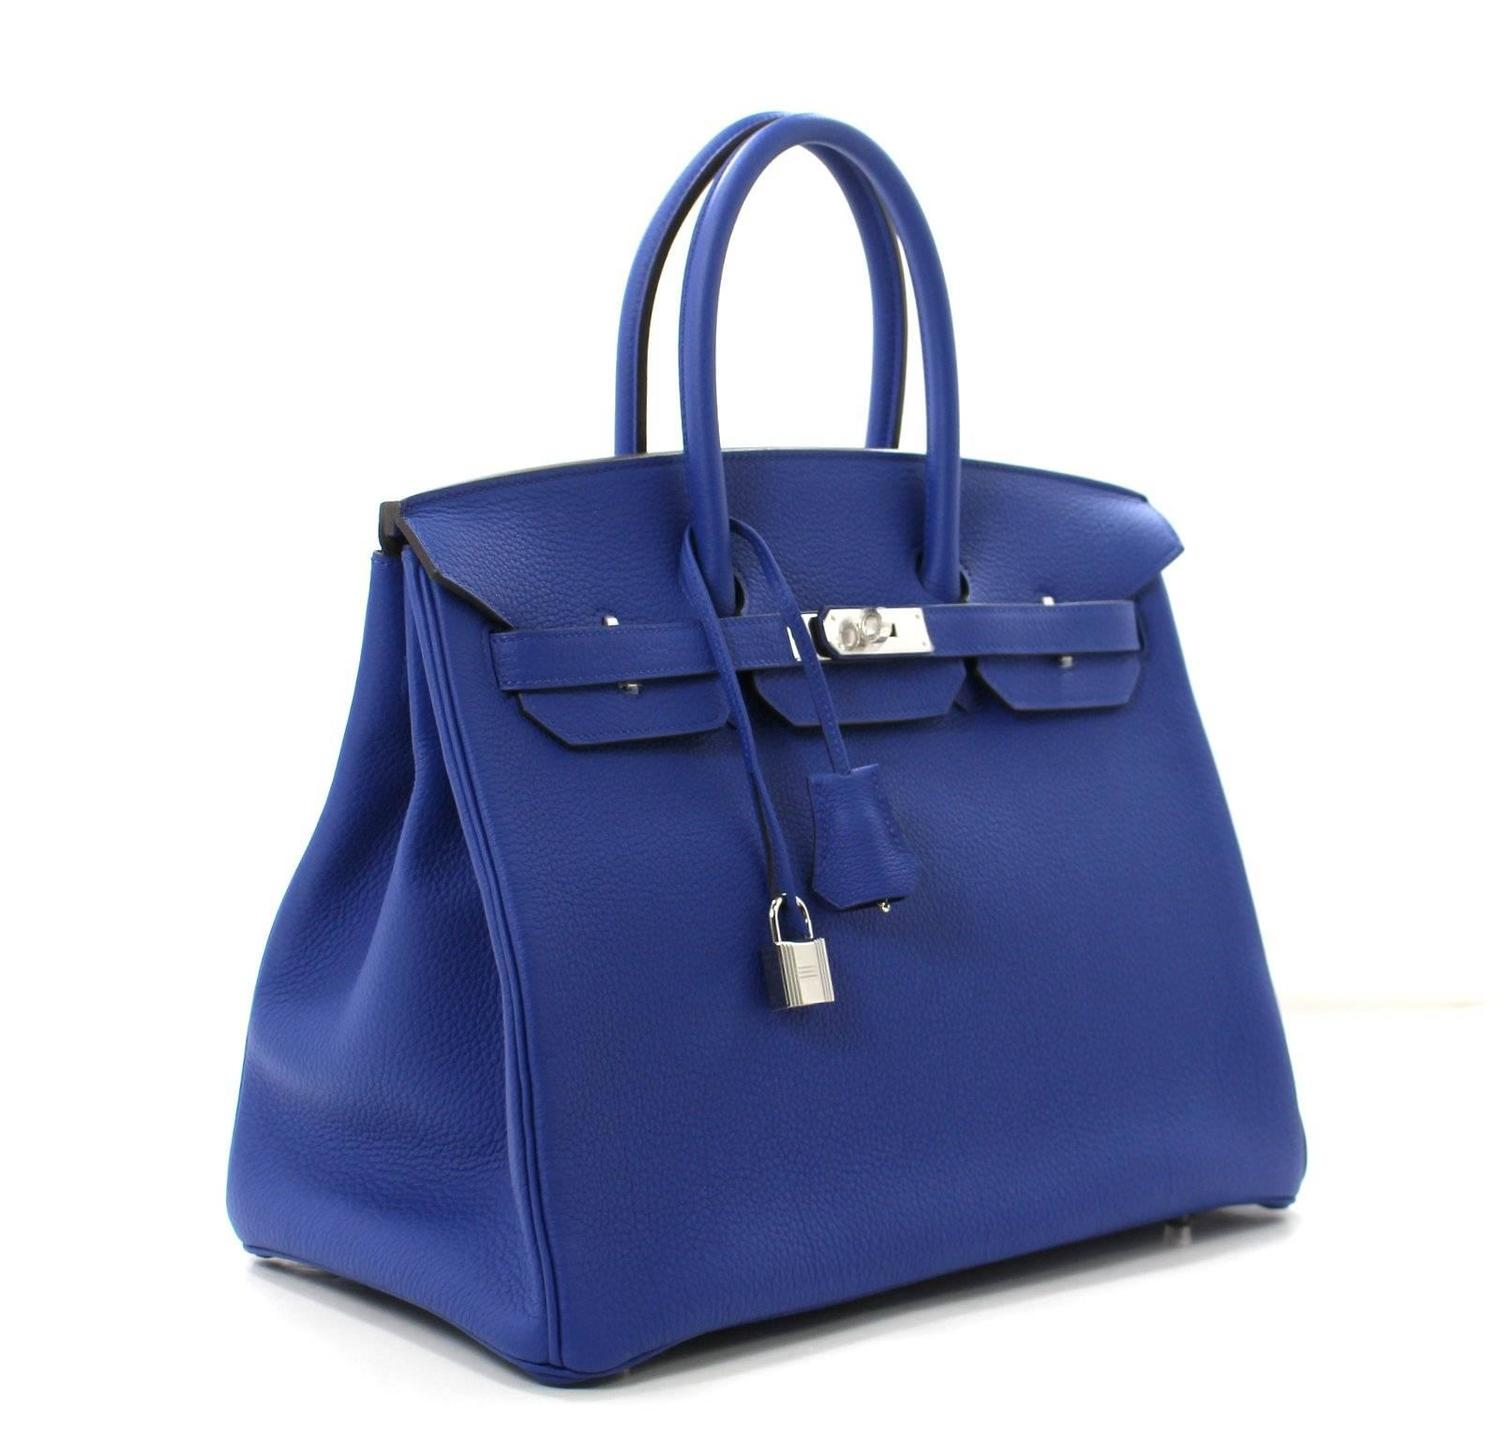 birkin bag price range - Hermes Blue Electrique Togo Birkin Bag, 35 cm size with PHW For ...